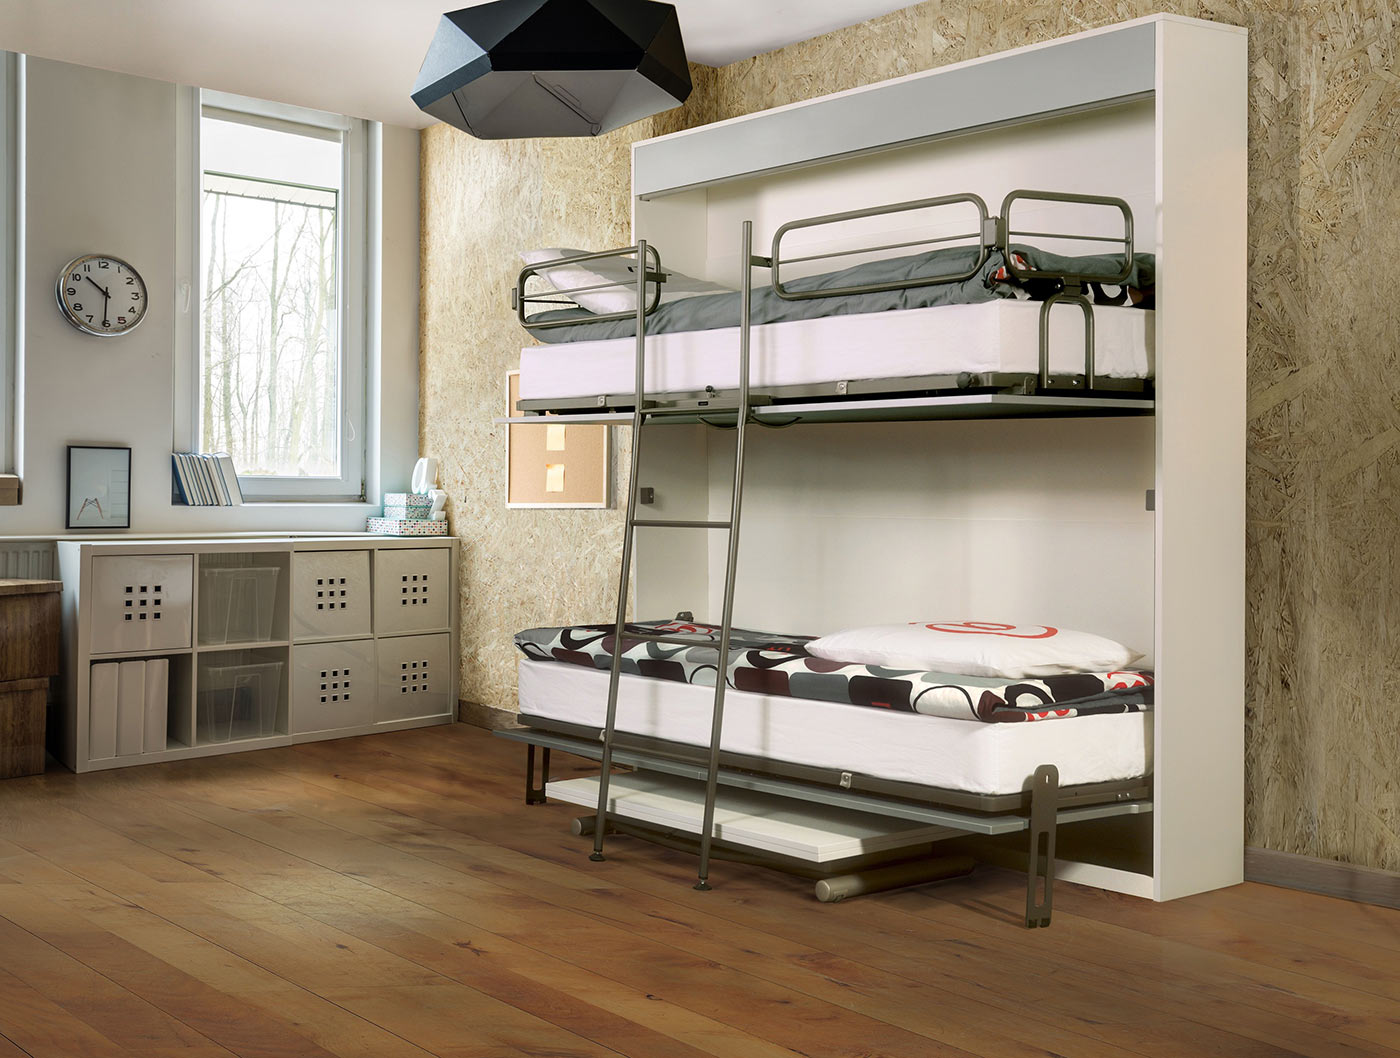 Picture of: Mix Wallbed Bunk Bed The London Wallbed Company